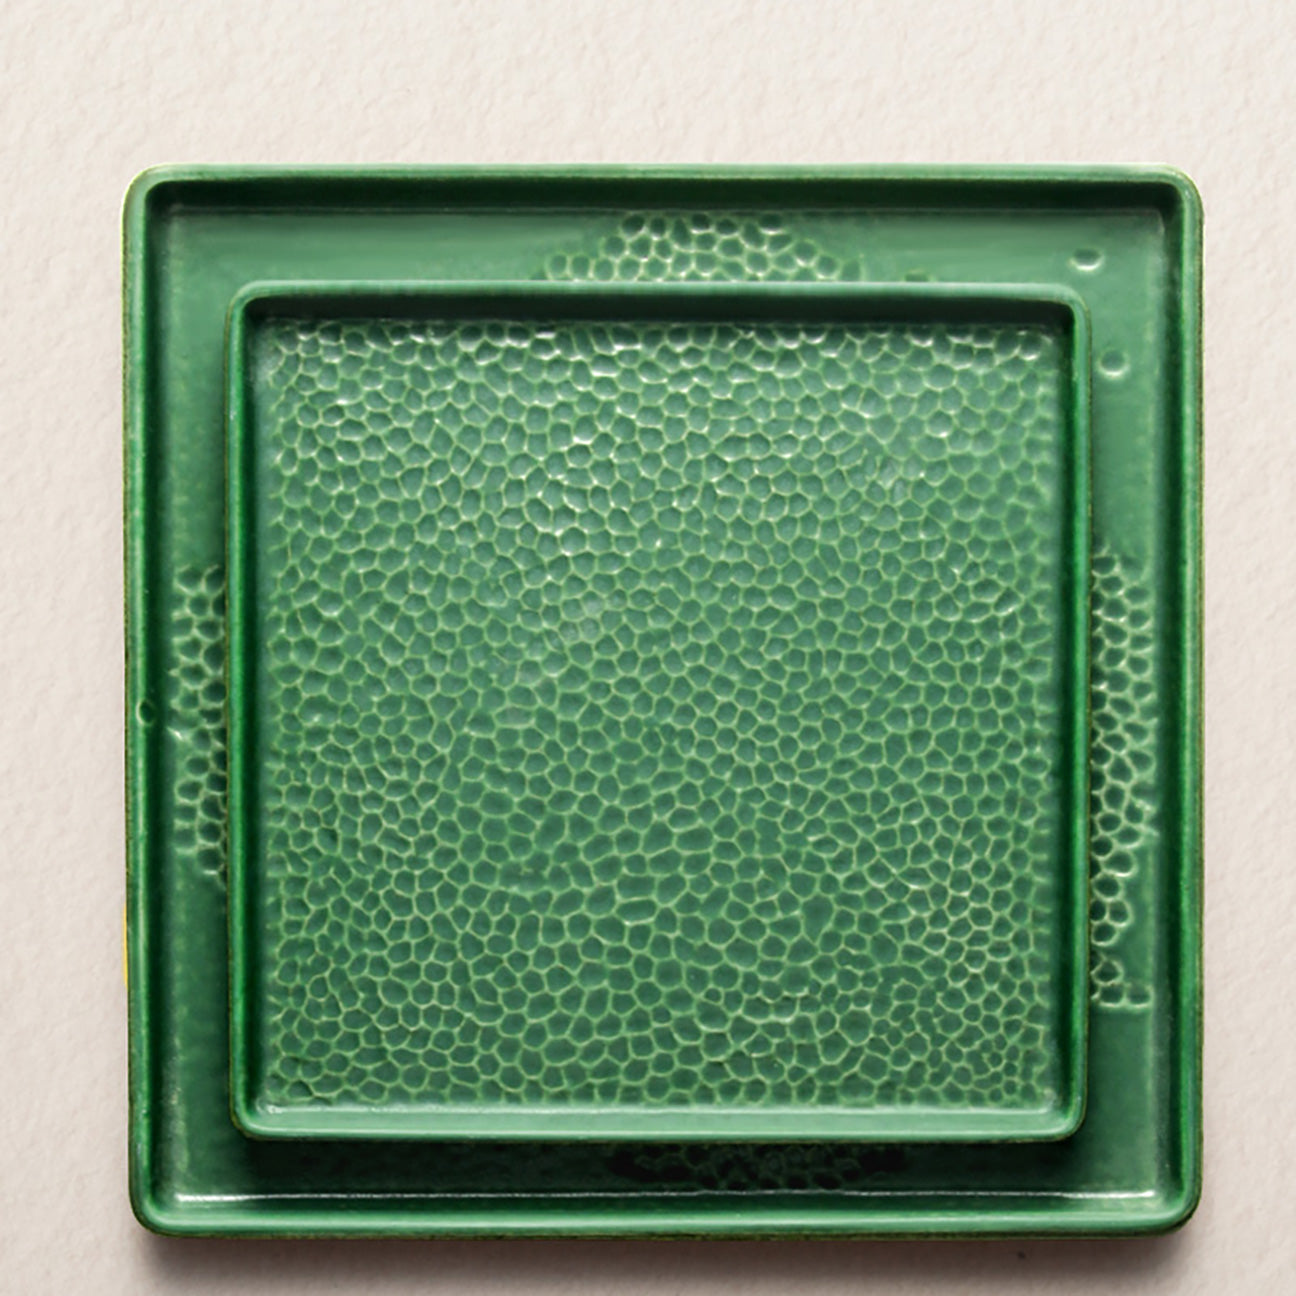 Dining plate - square series